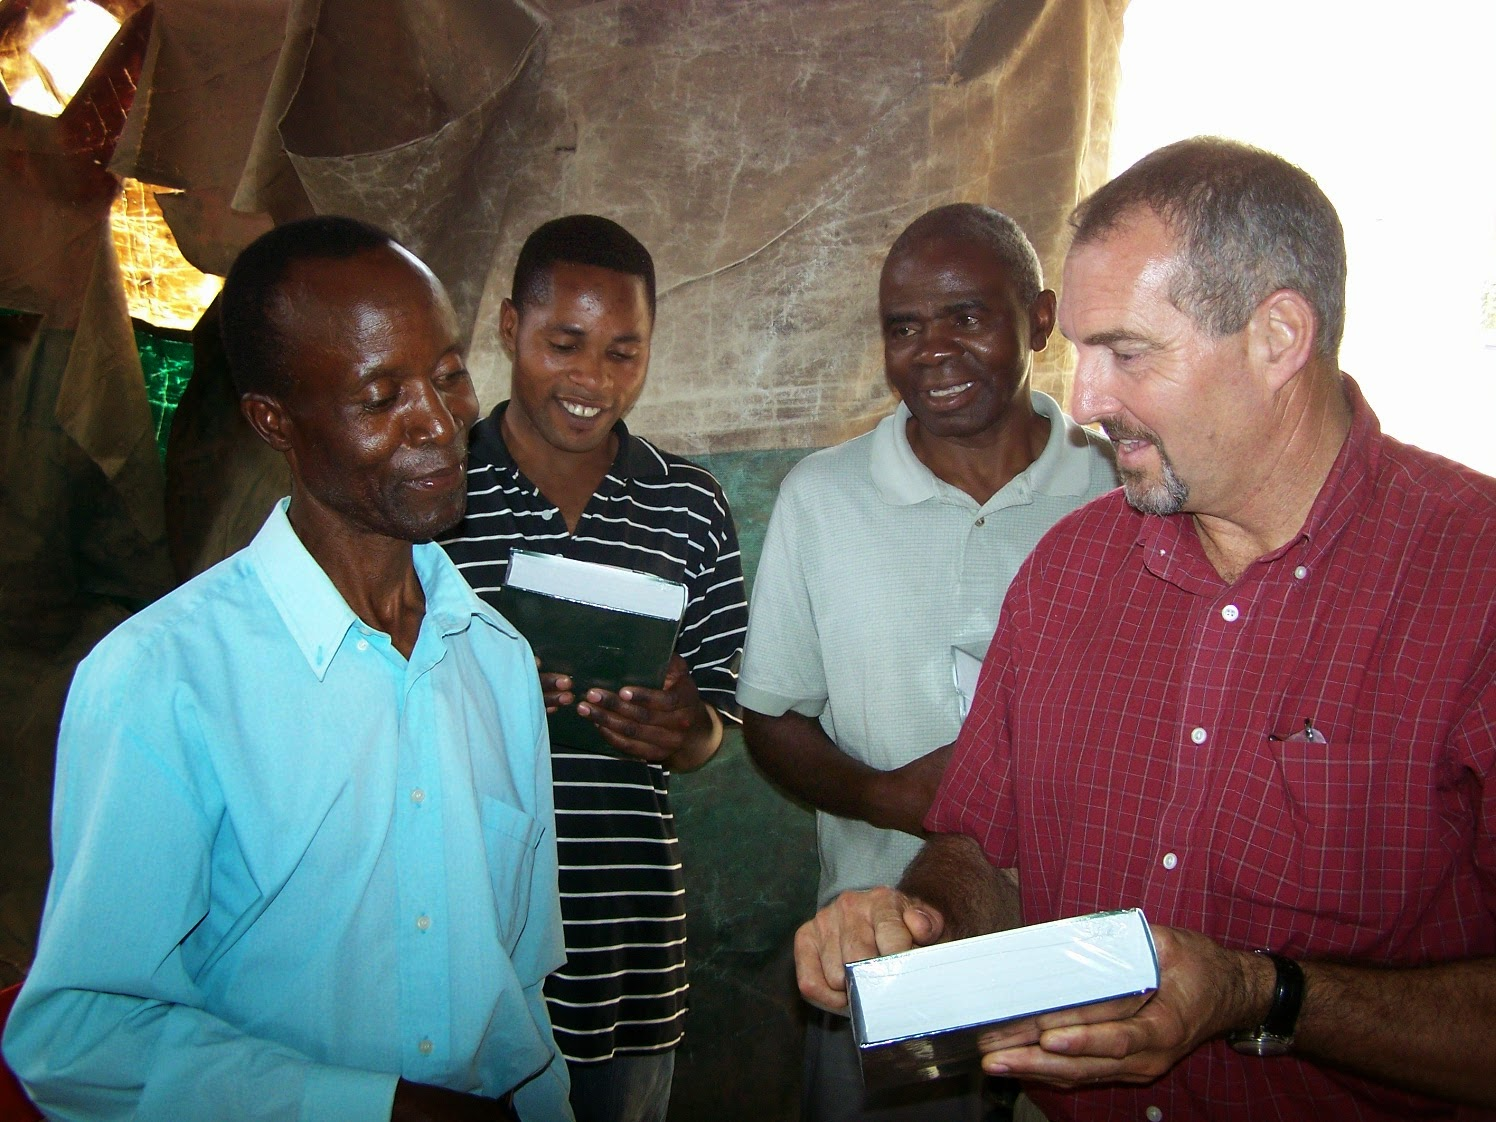 Bibles in Zambia